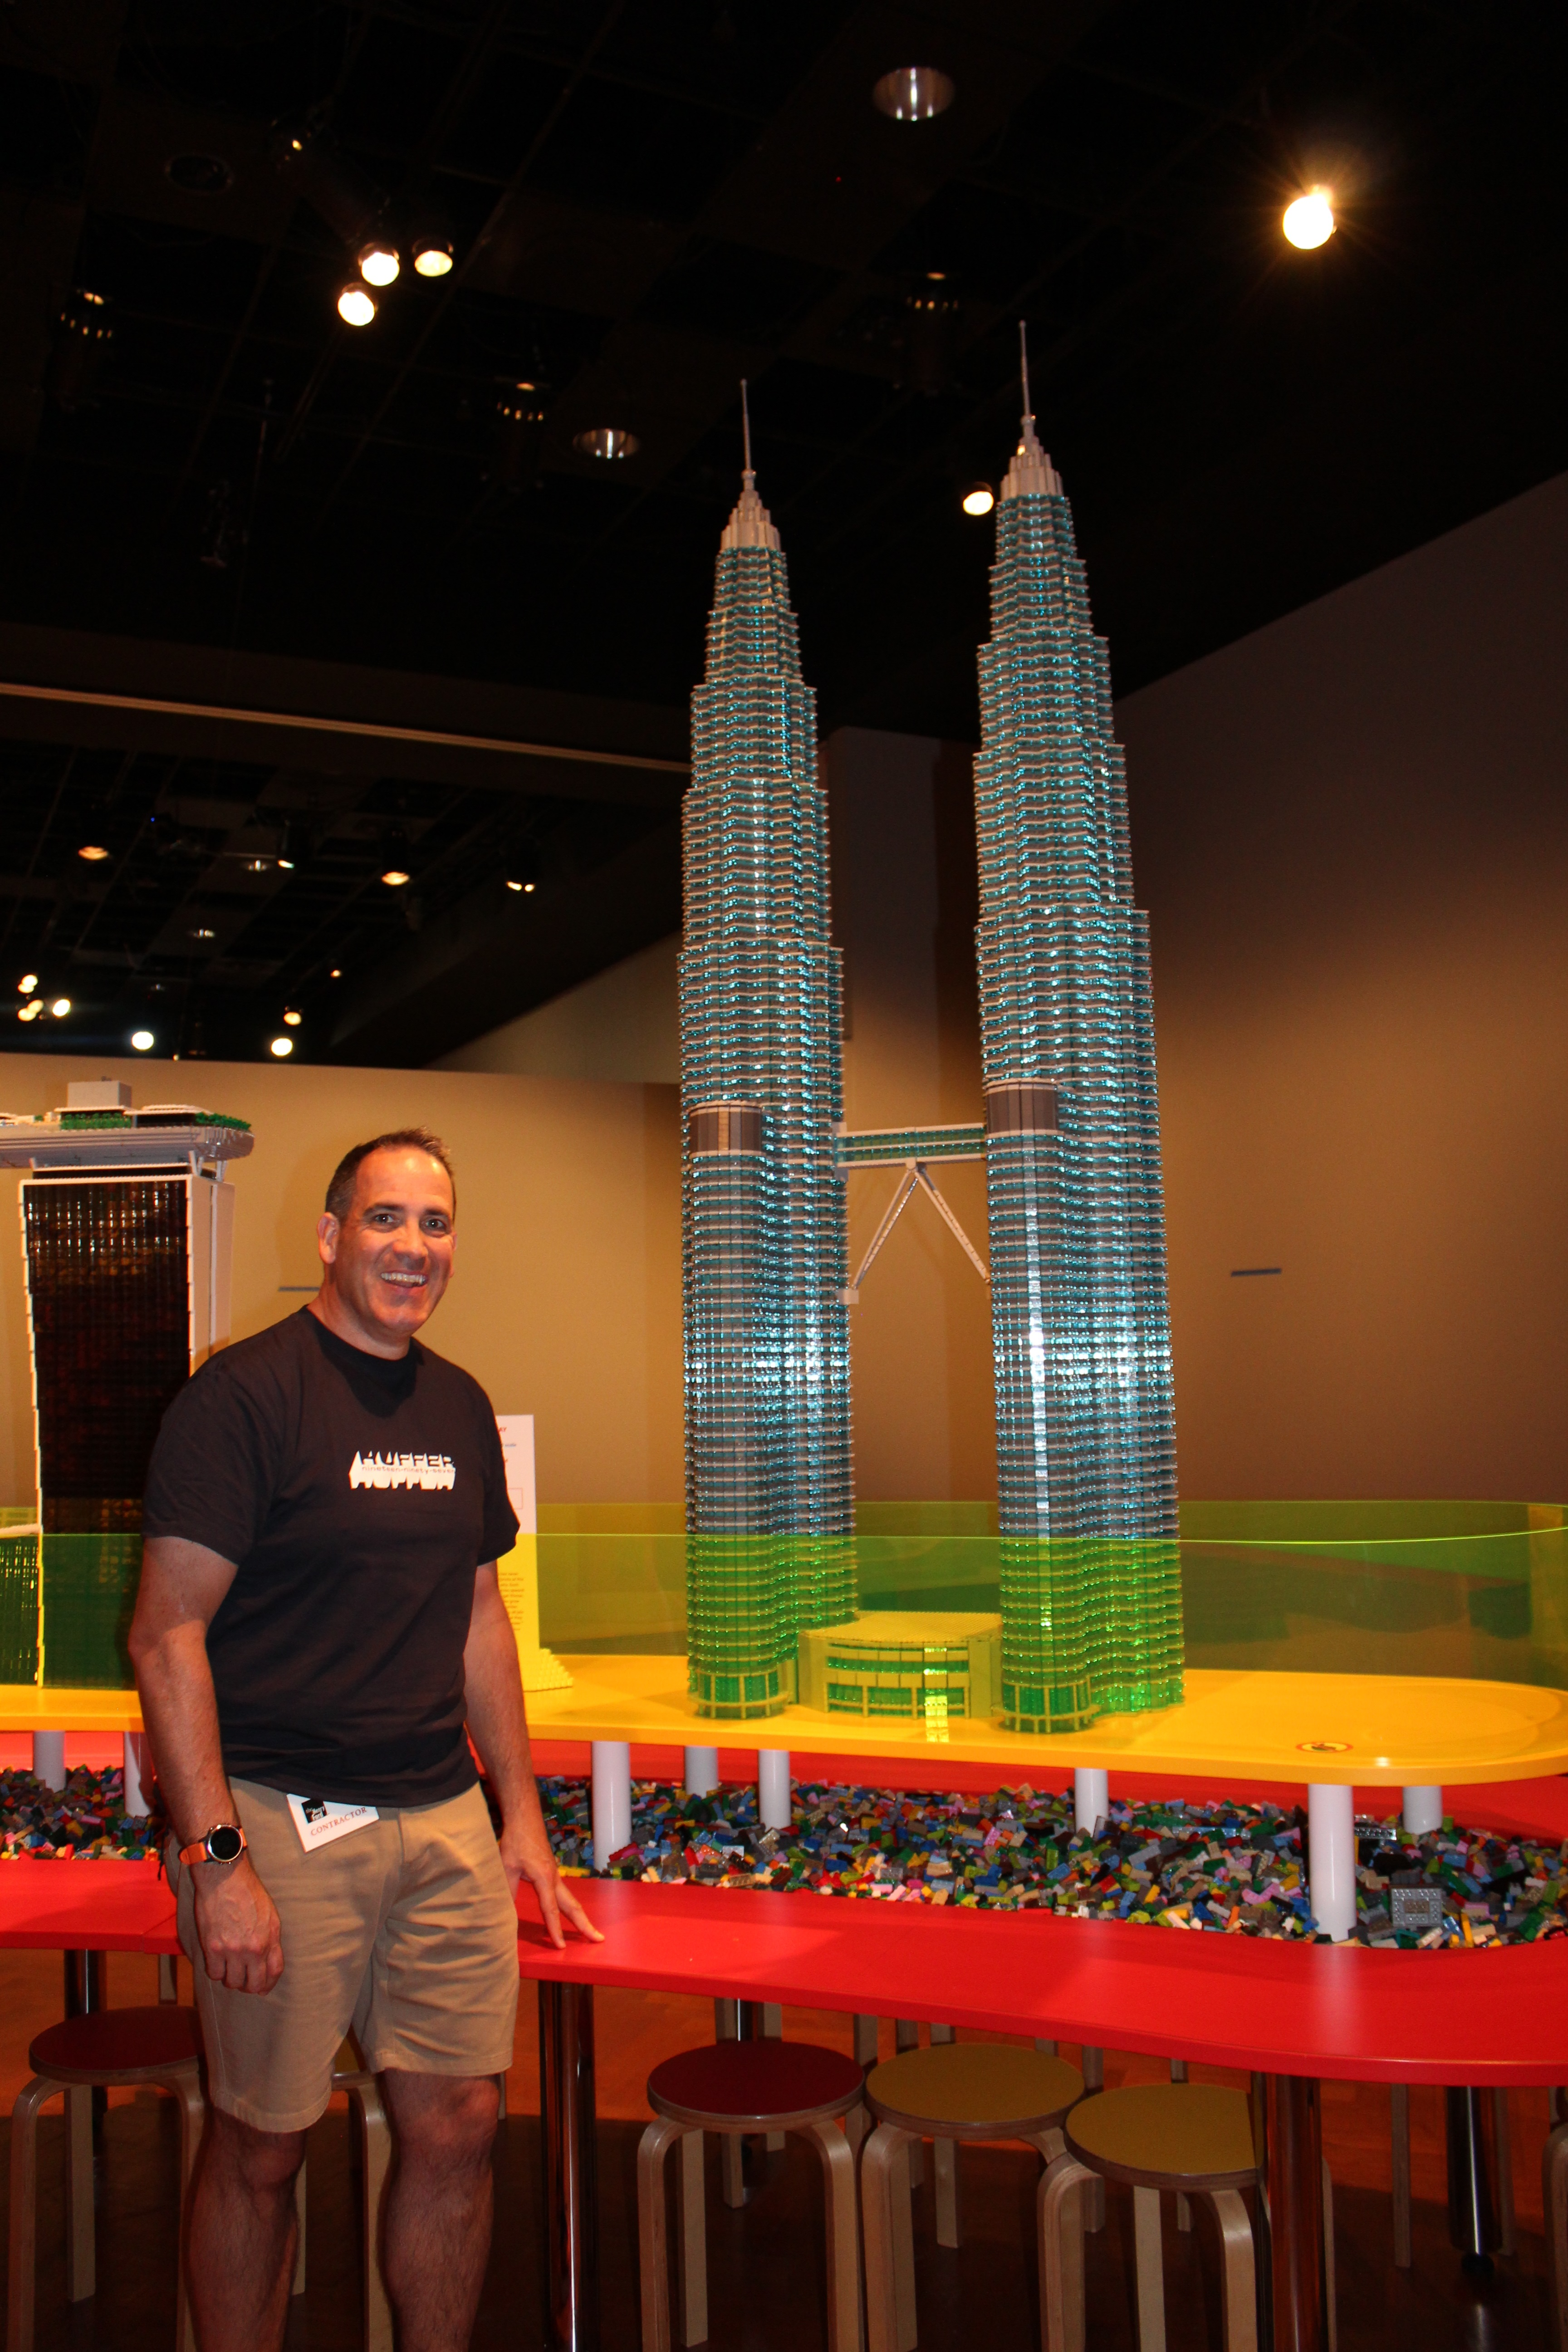 Photo shows Ryan McNaught standing next to a lego replica of the Petronas Towers